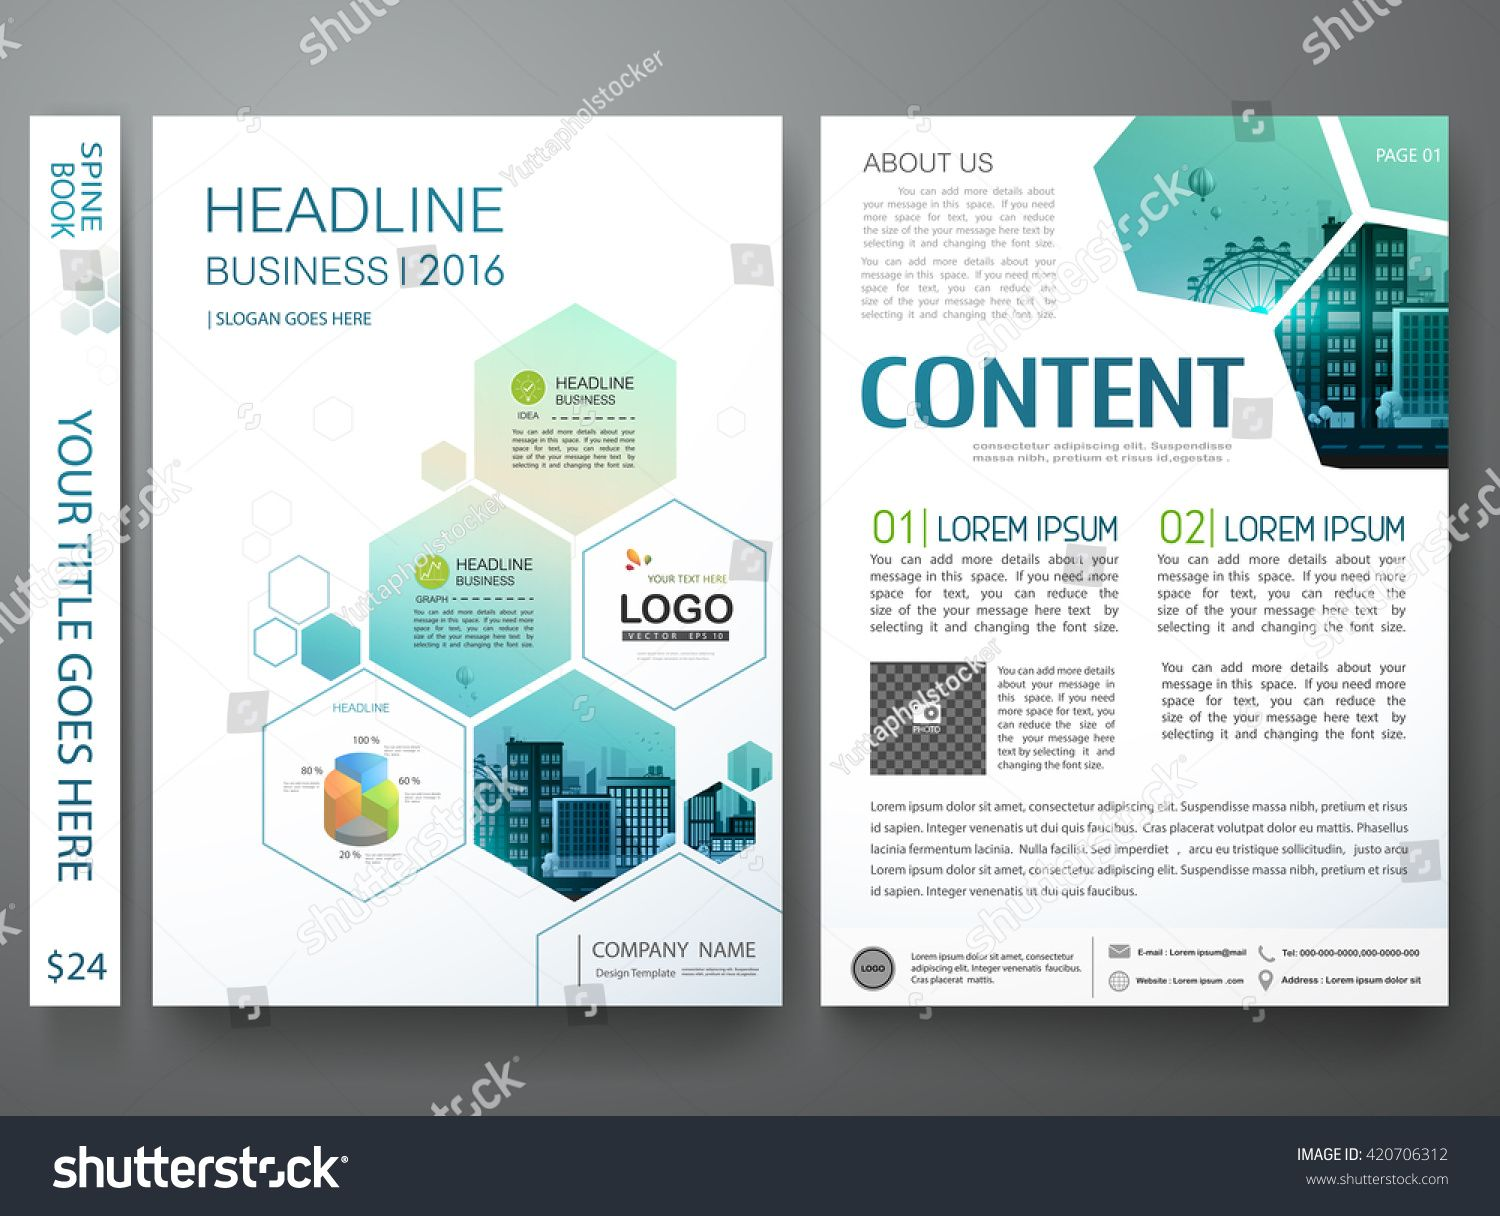 powerpoint poster templates 48x36.html